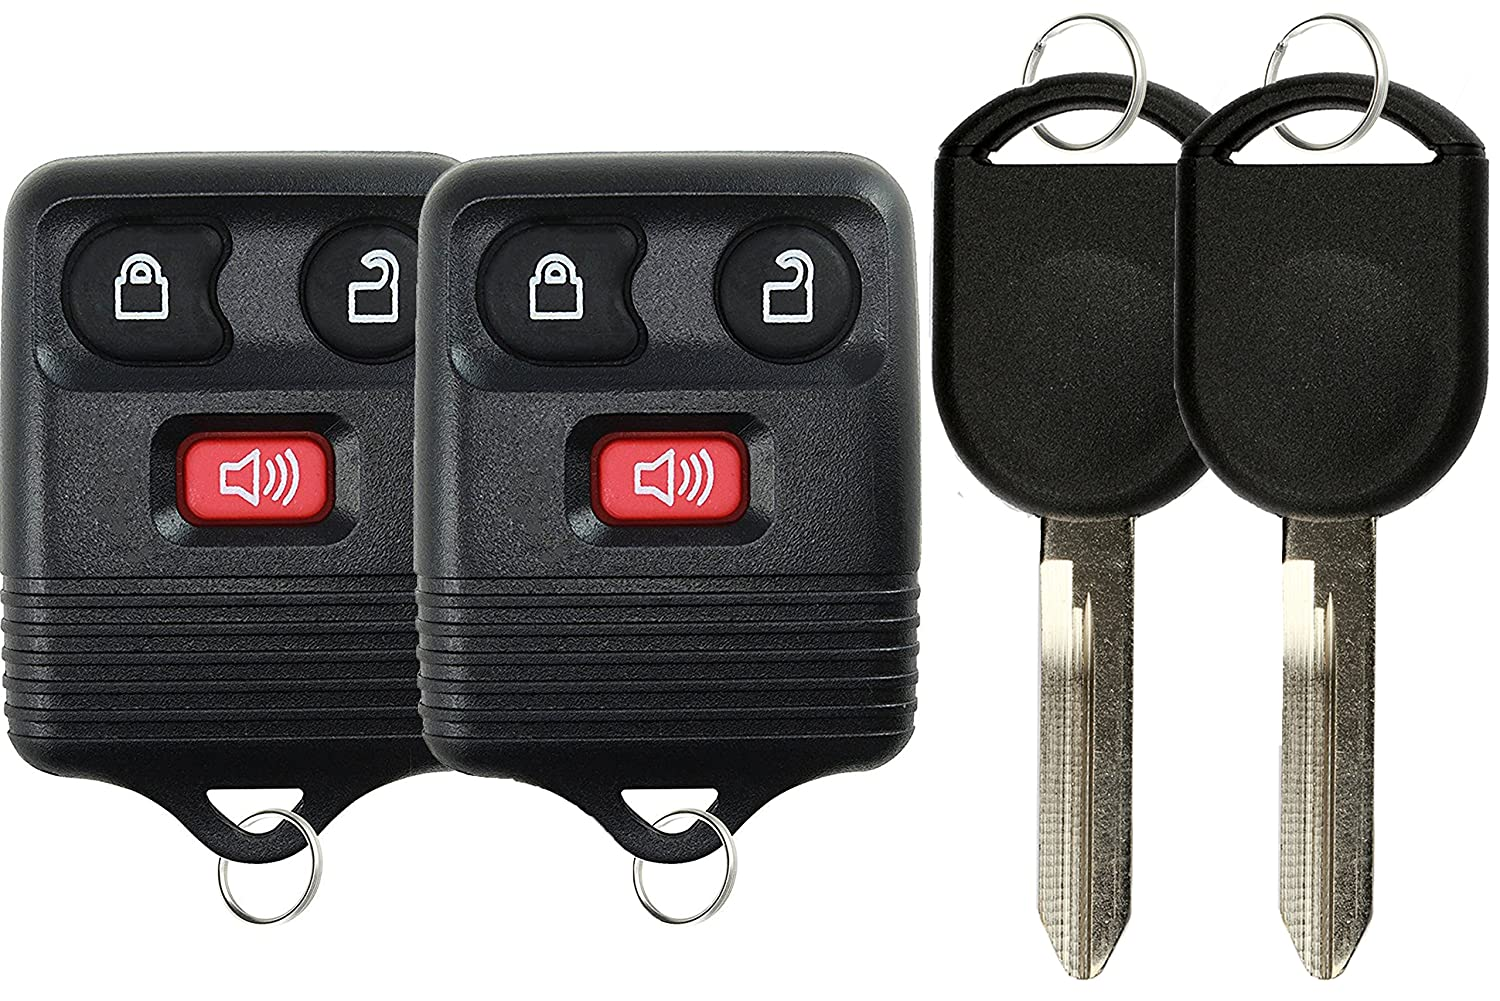 KeylessOption Keyless Entry Remote Control Fob Uncut Blank Car Ignition Key For GQ43VT11T Pack of 2 CWTWB1U345